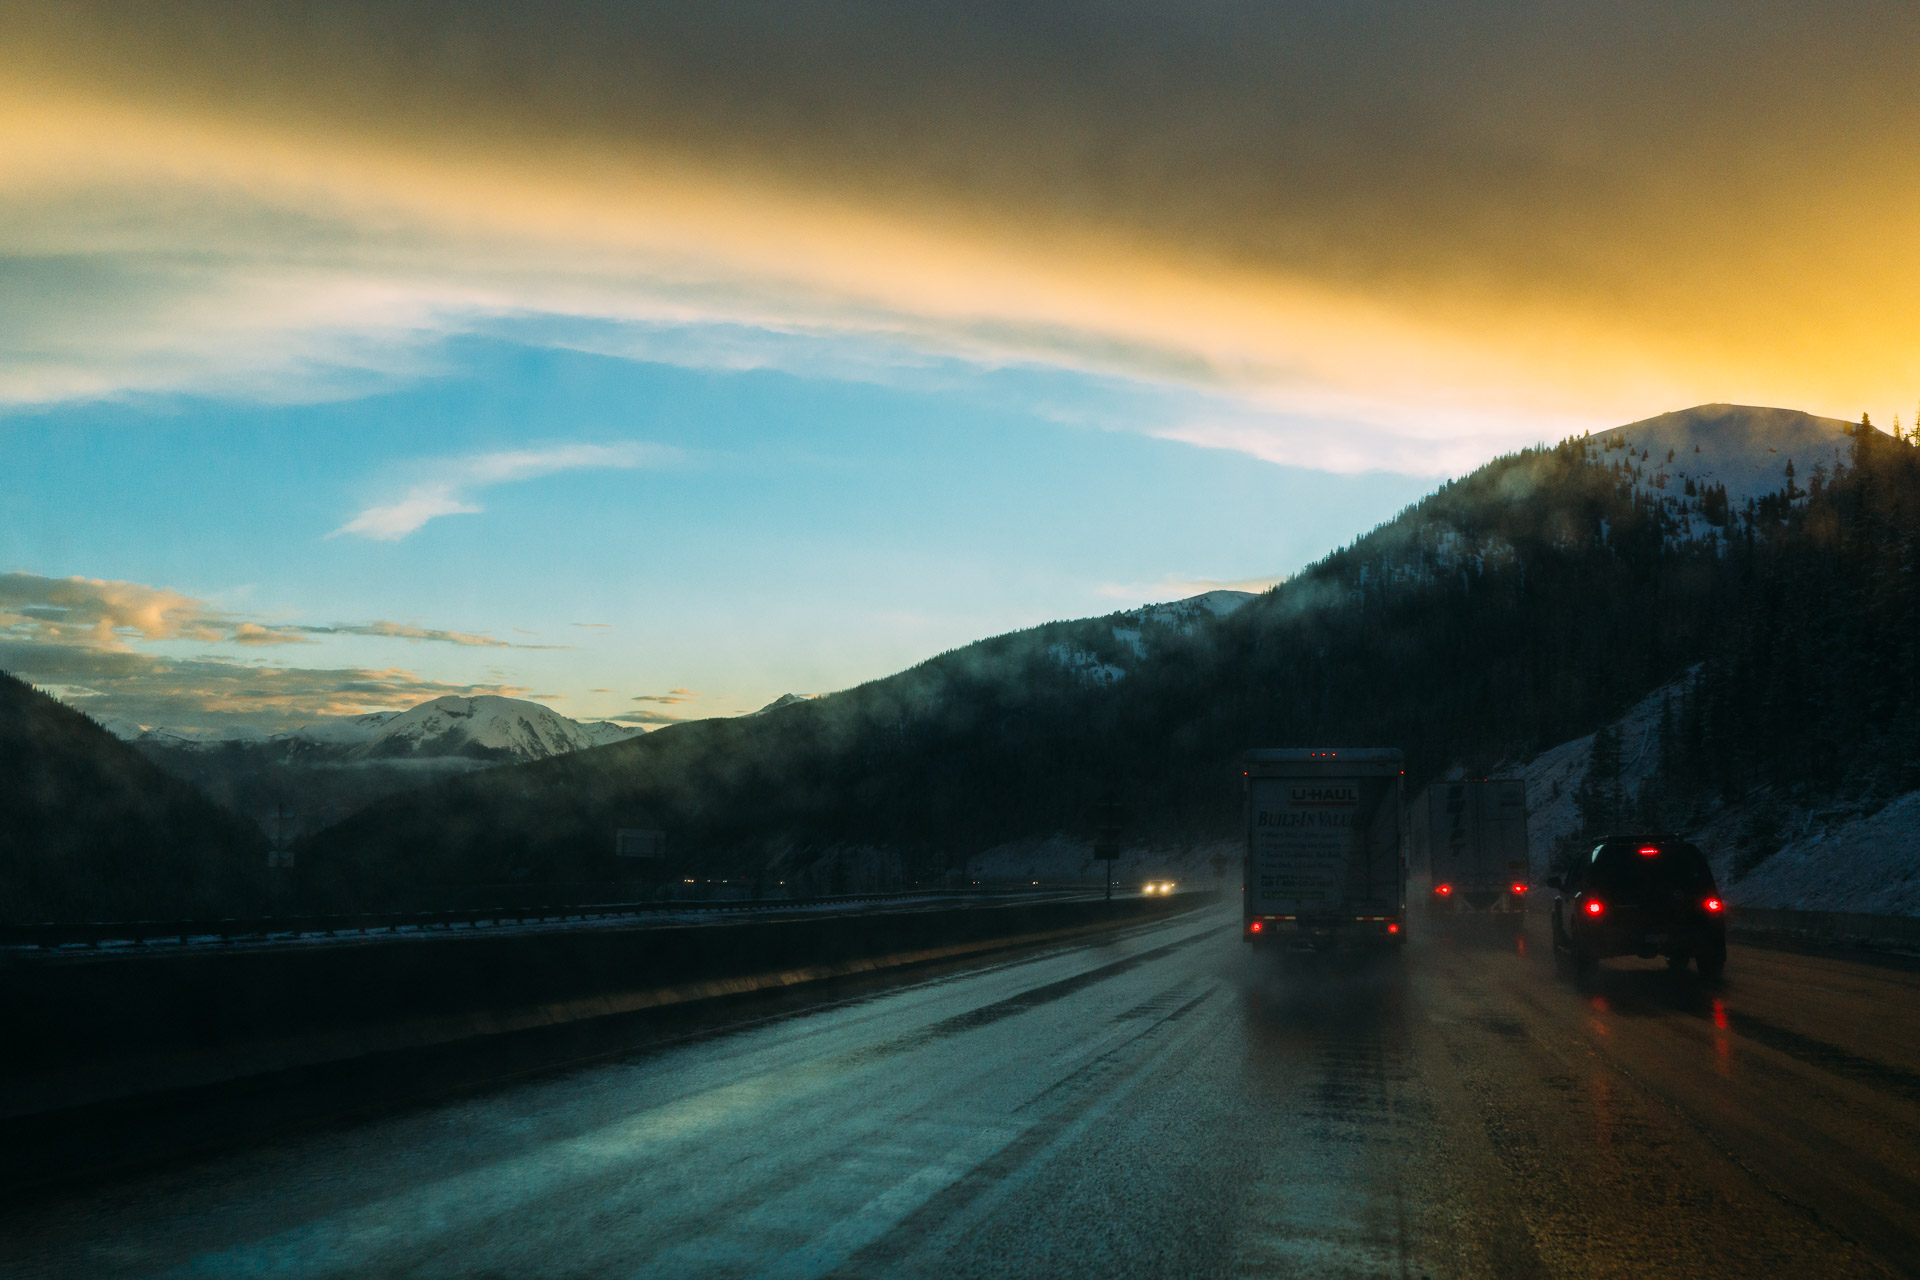 A   U-Haul journey across the Rocky Mountains in Colorado (Sony RX1).